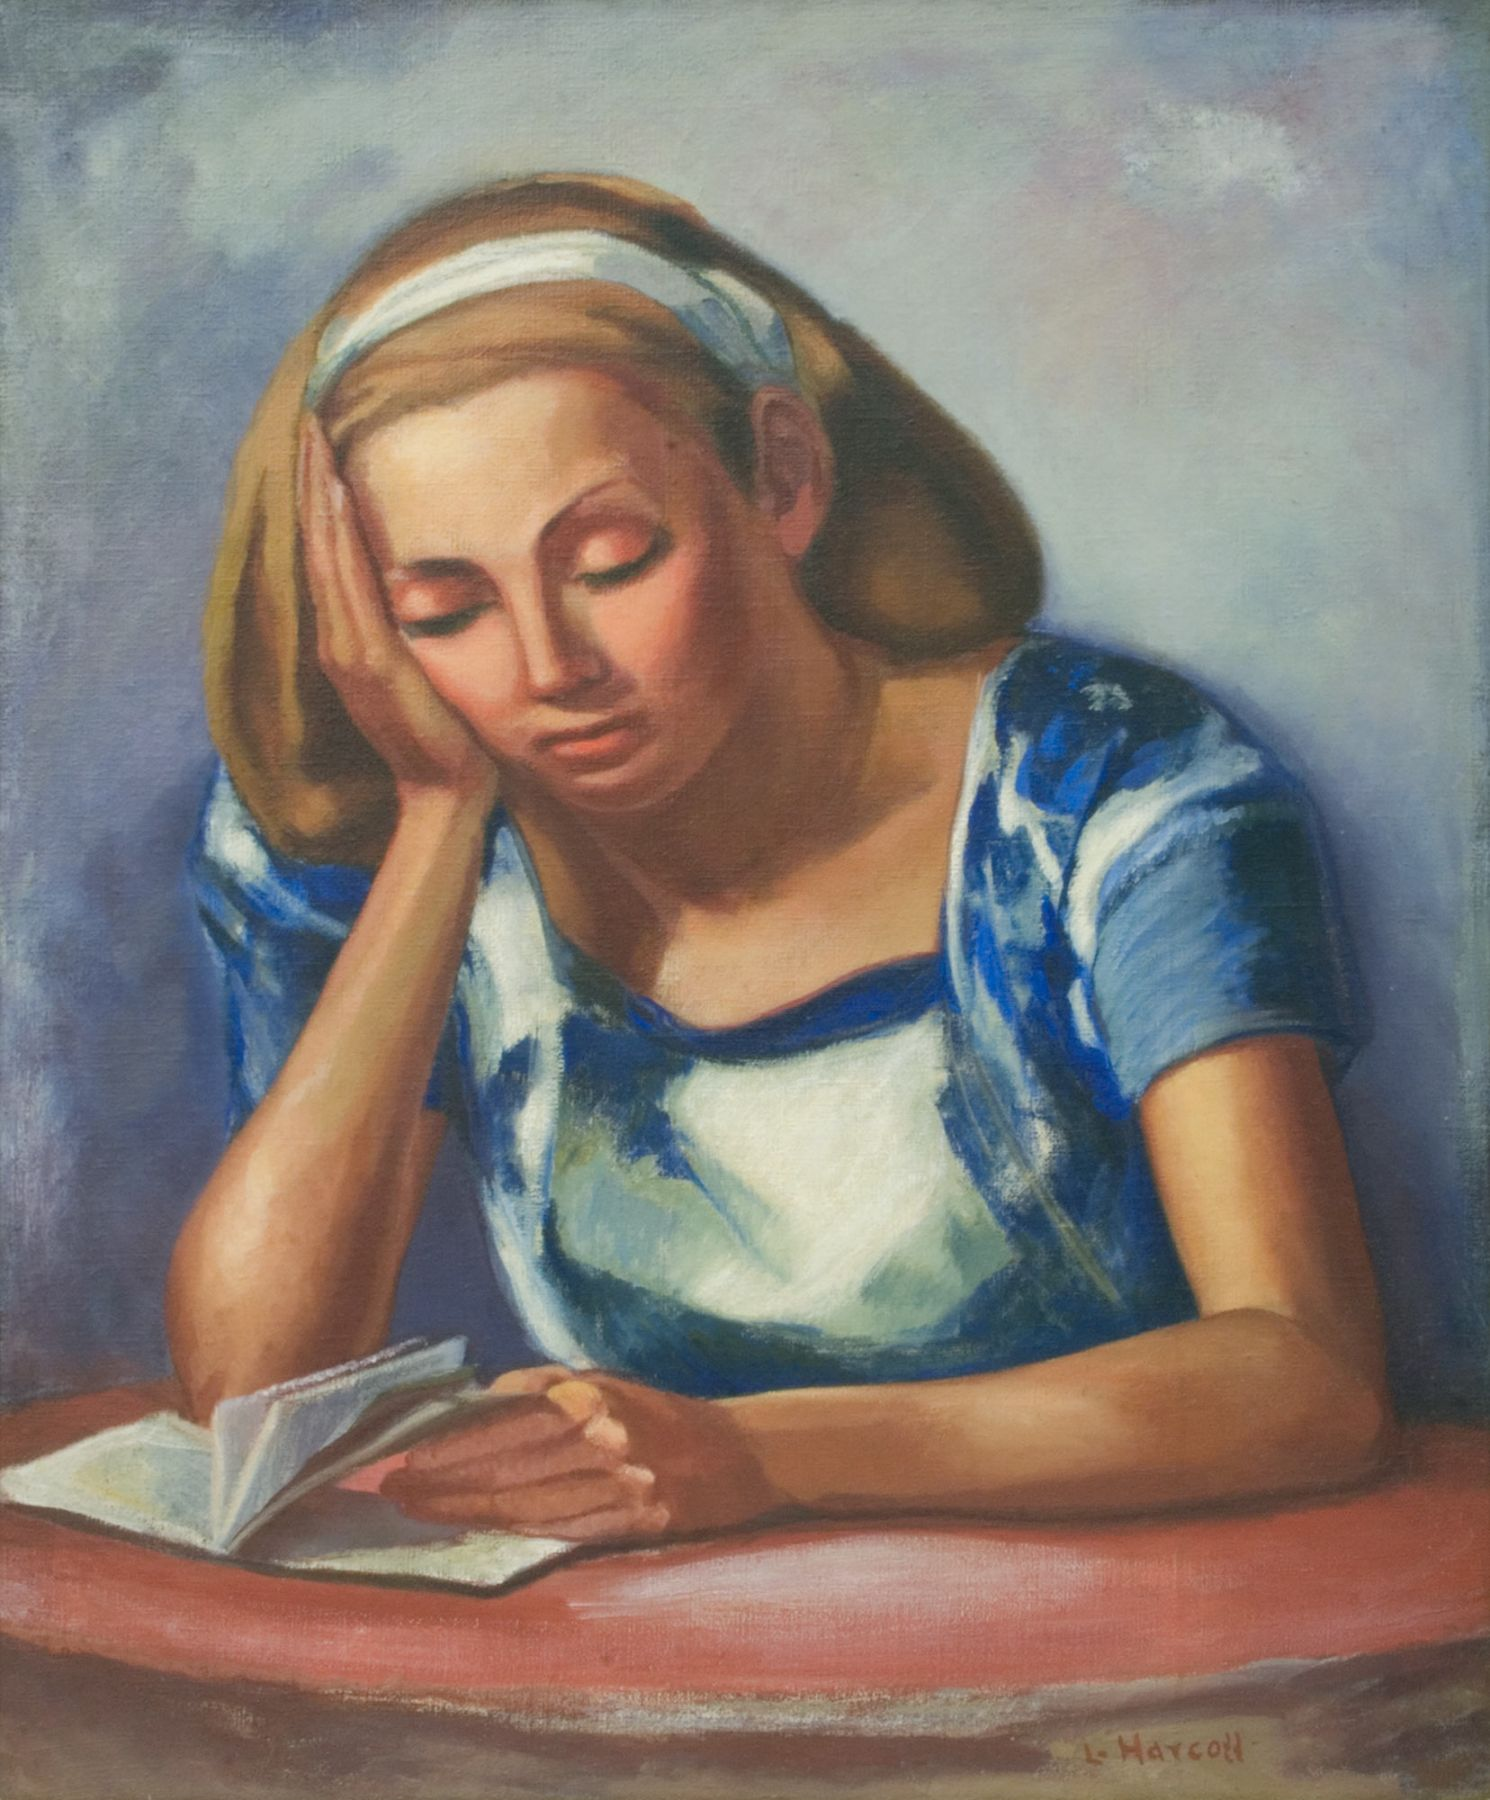 LYLA HARCOFF (1883-1956), Woman Reading, c. 1930s